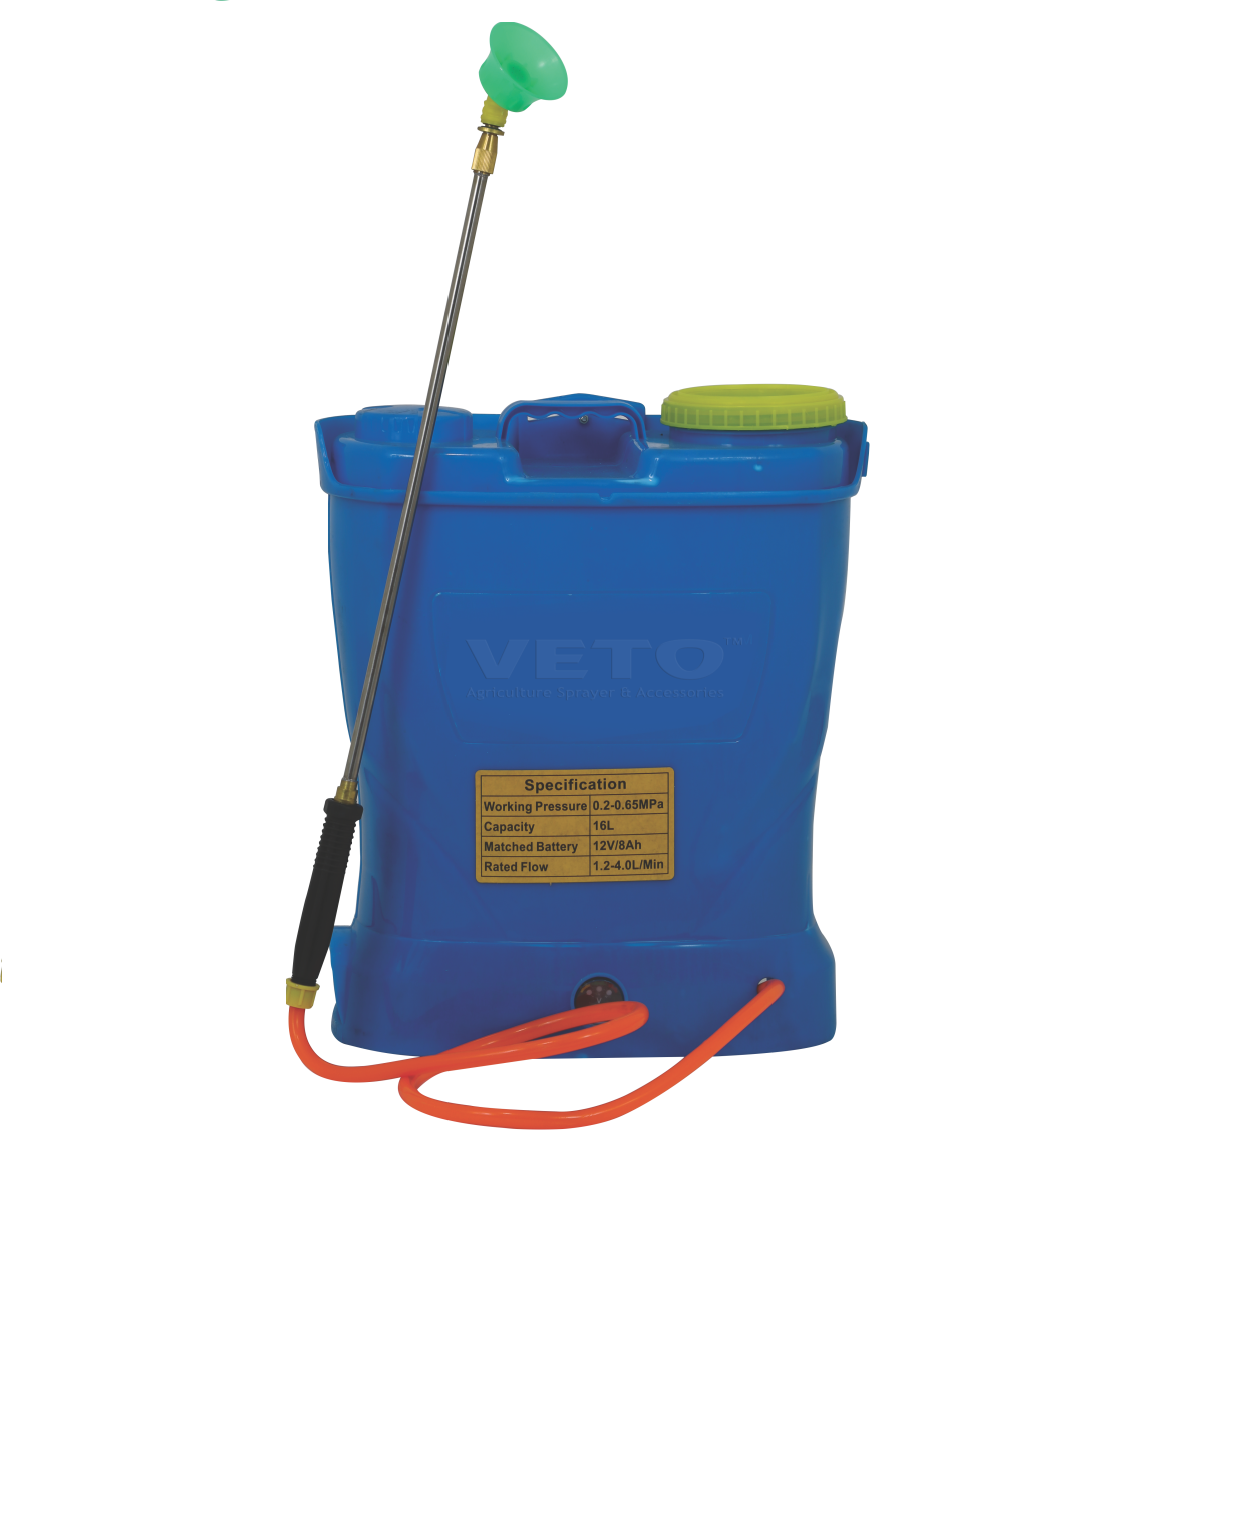 Knapsack Battery Sprayer Veto CS-VKB16-1